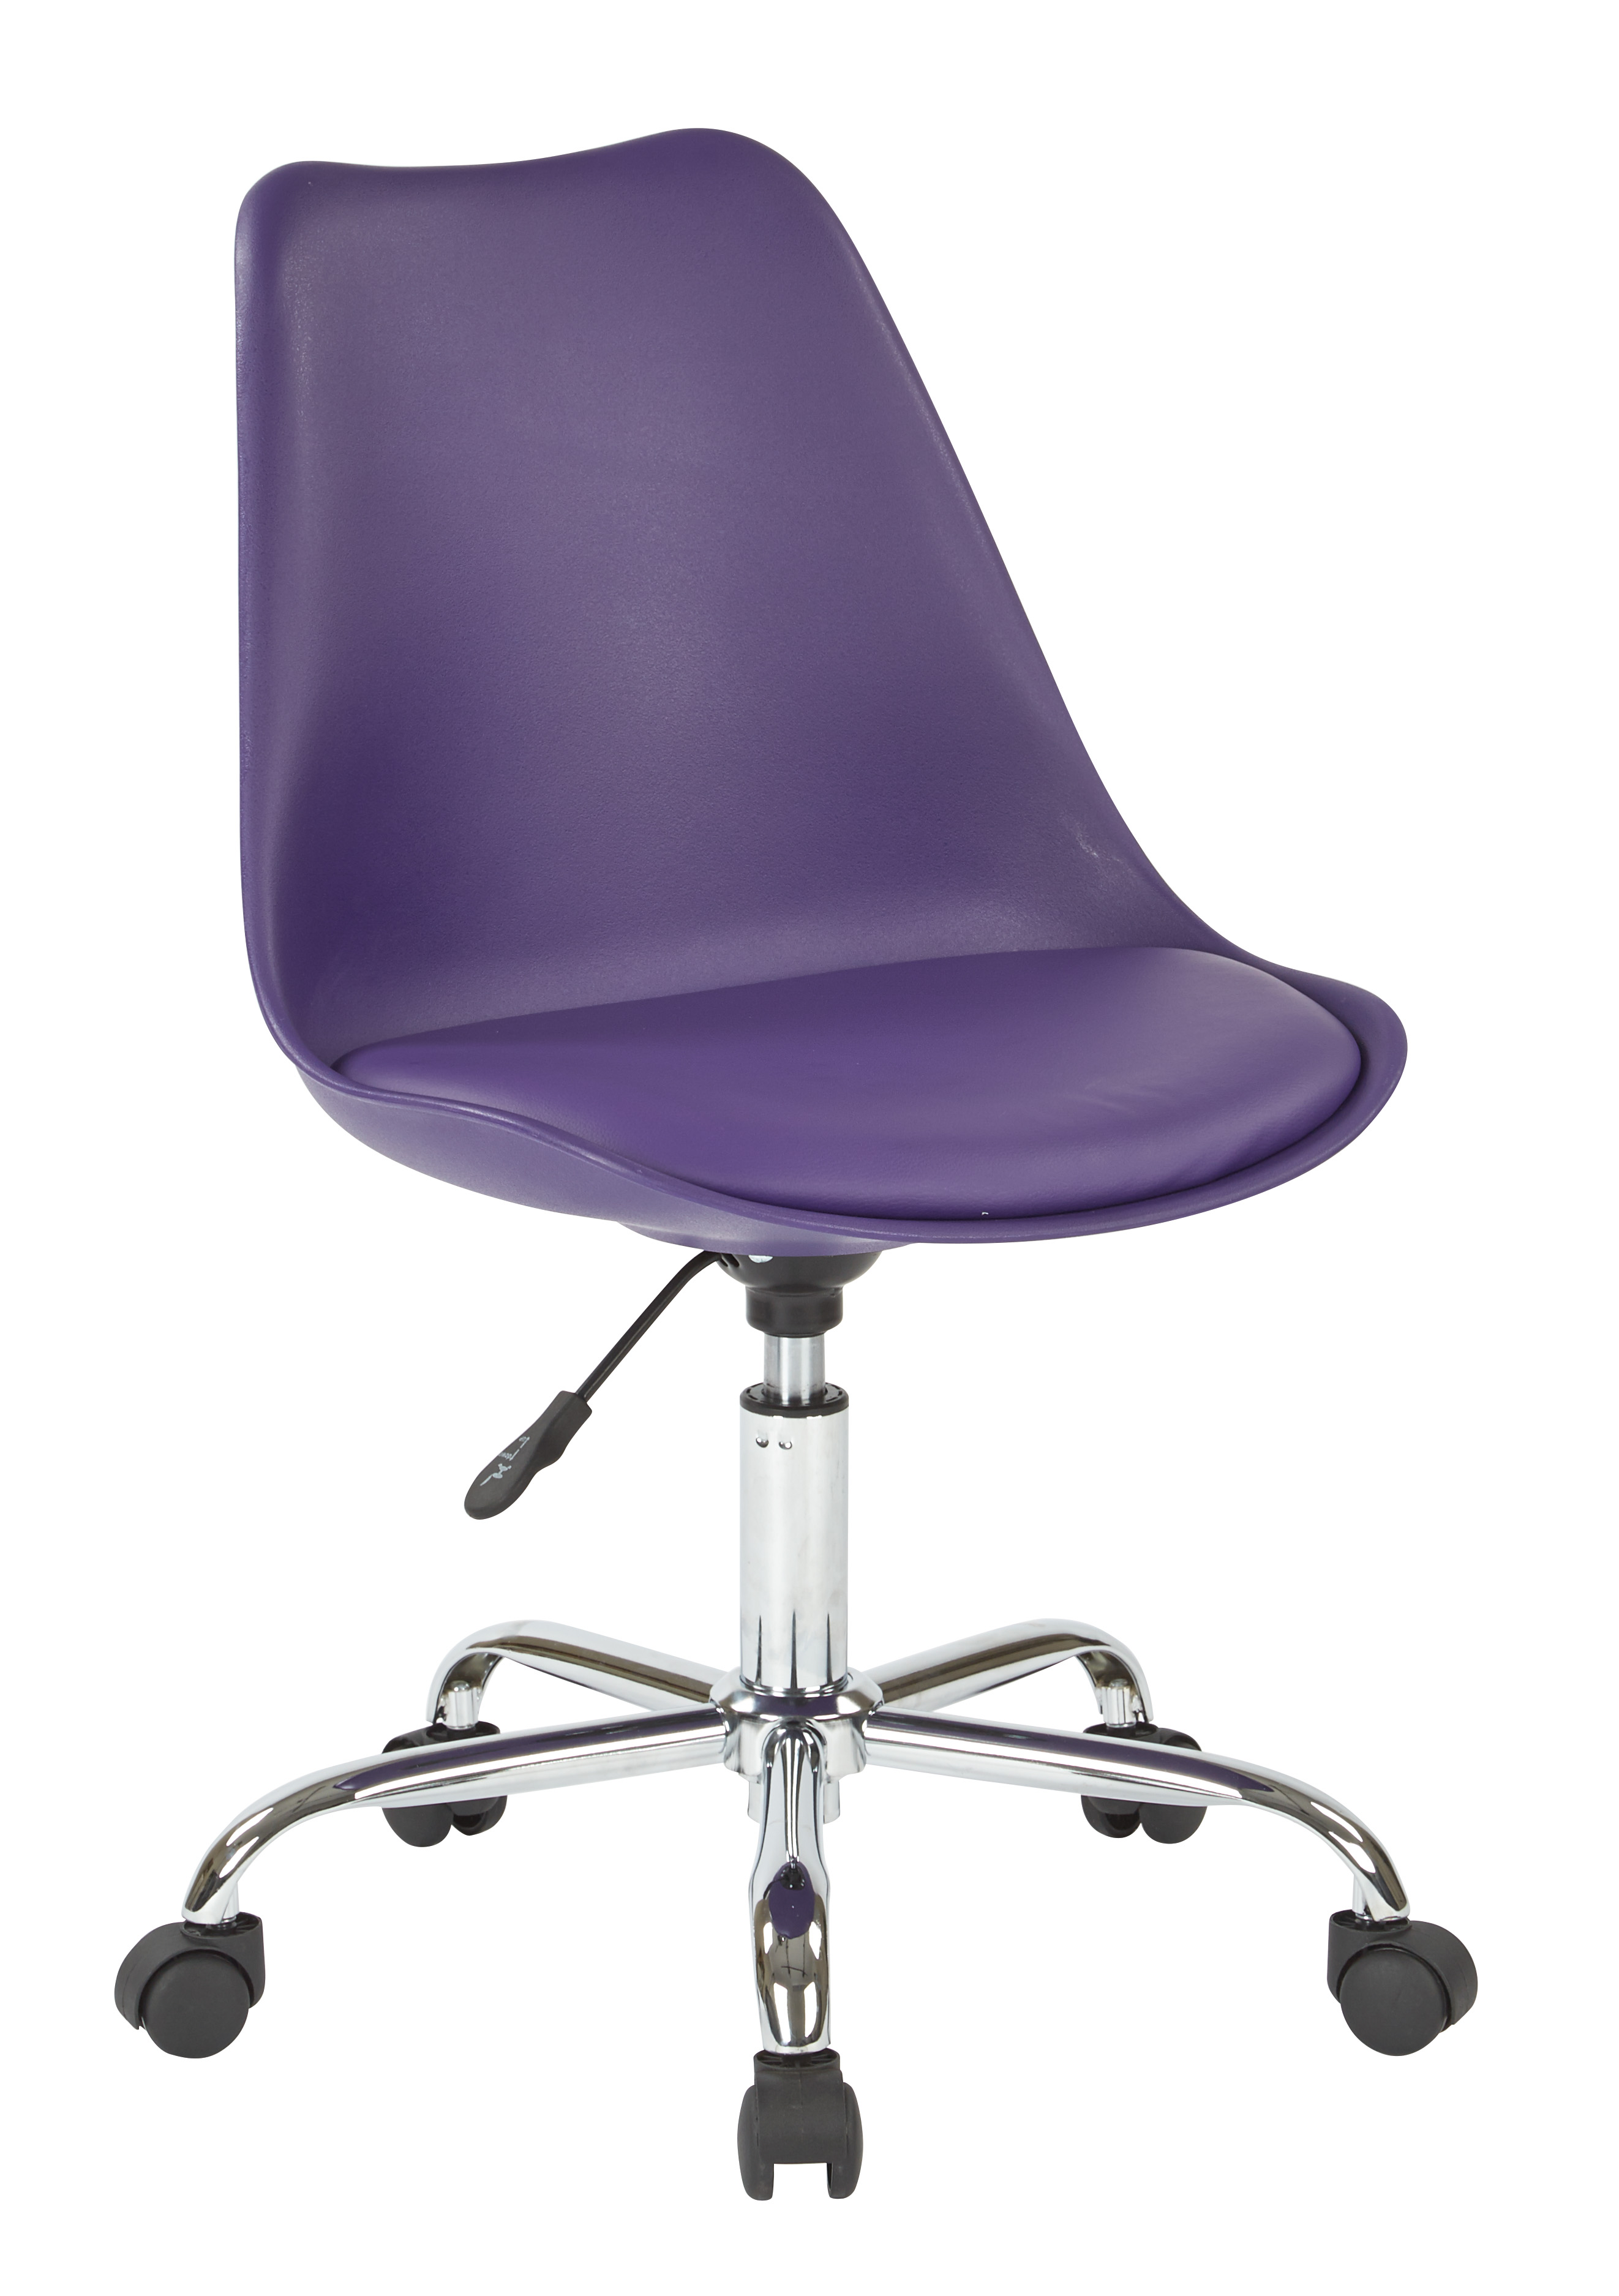 Emerson Student Office Chair by Ave Six Office Star : EMS26 512hi from www.madisonseating.com size 2644 x 3750 jpeg 489kB